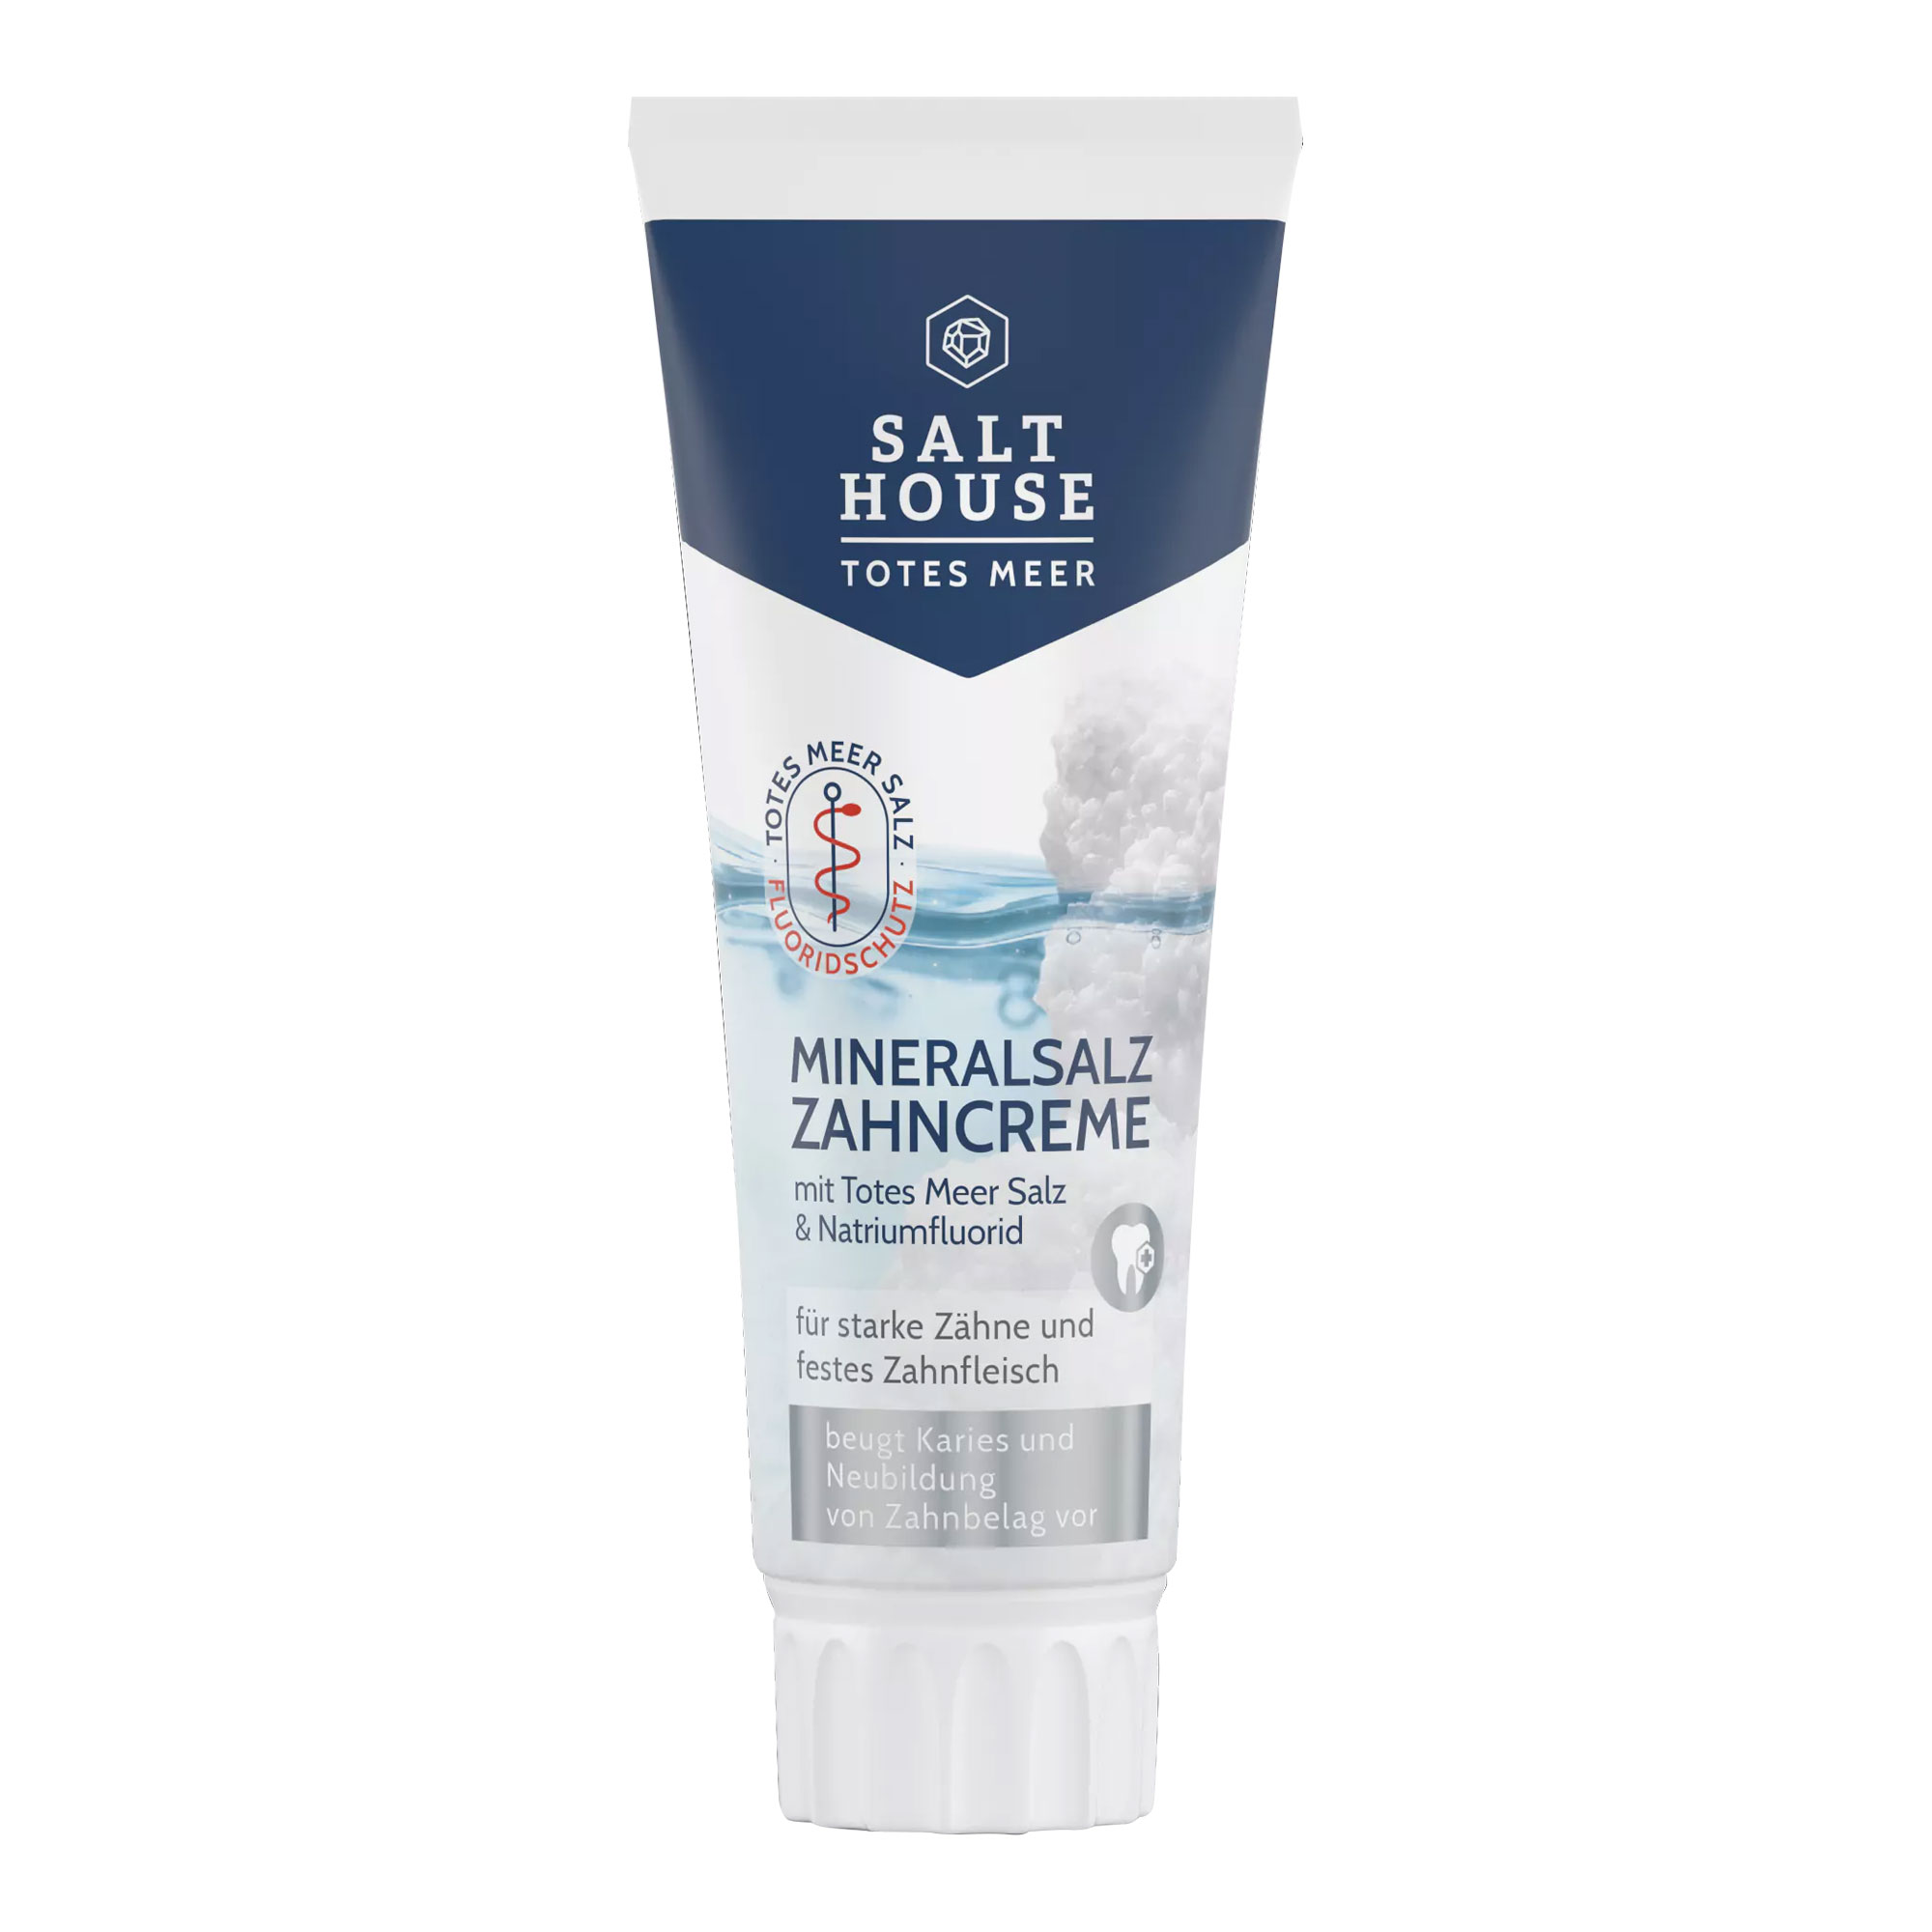 SALTHOUSE ZAHNCREME THERAP